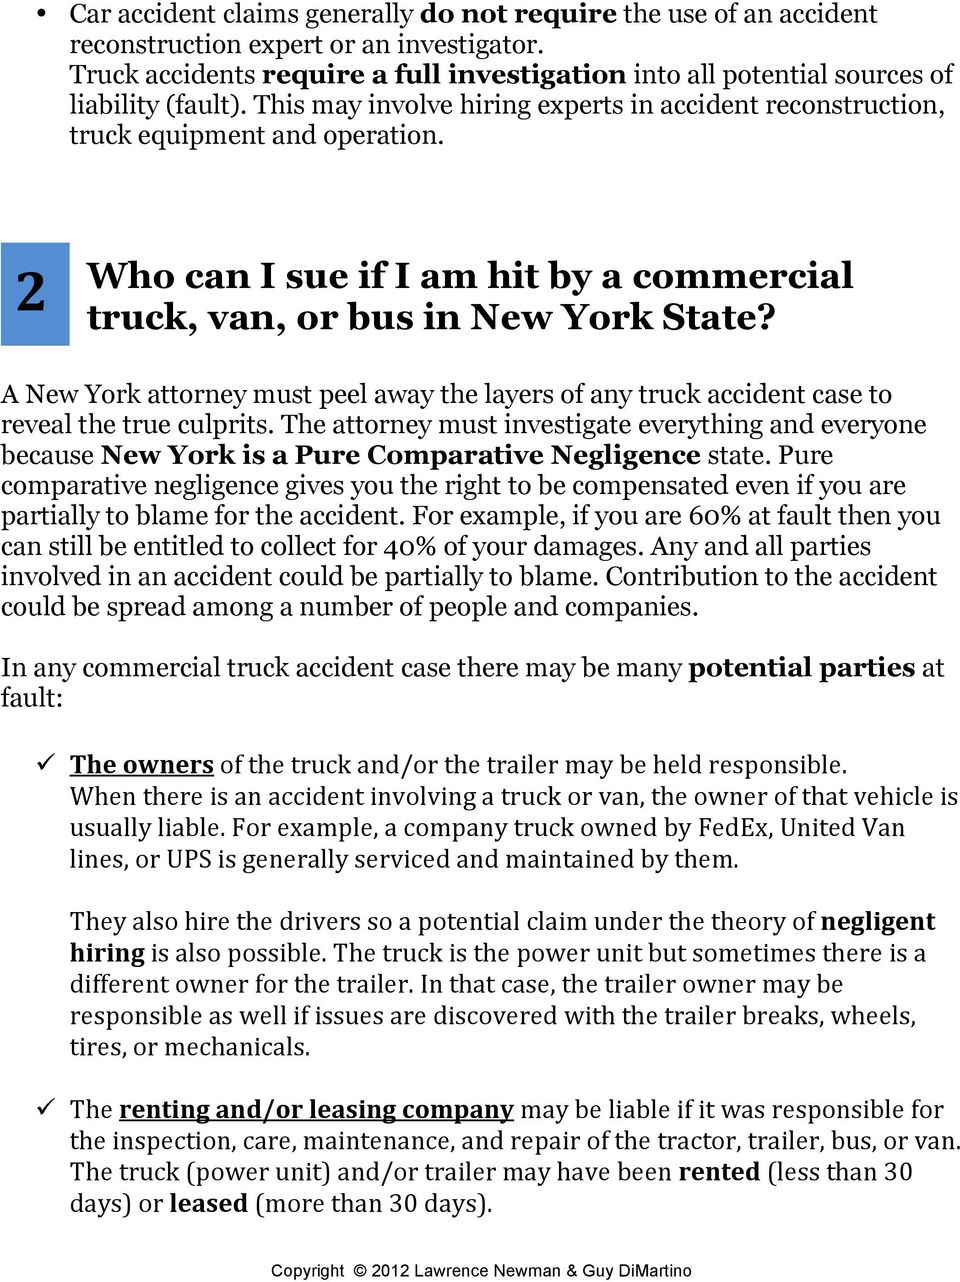 2 Who can I sue if I am hit by a commercial truck, van, or bus in New York State? A New York attorney must peel away the layers of any truck accident case to reveal the true culprits.